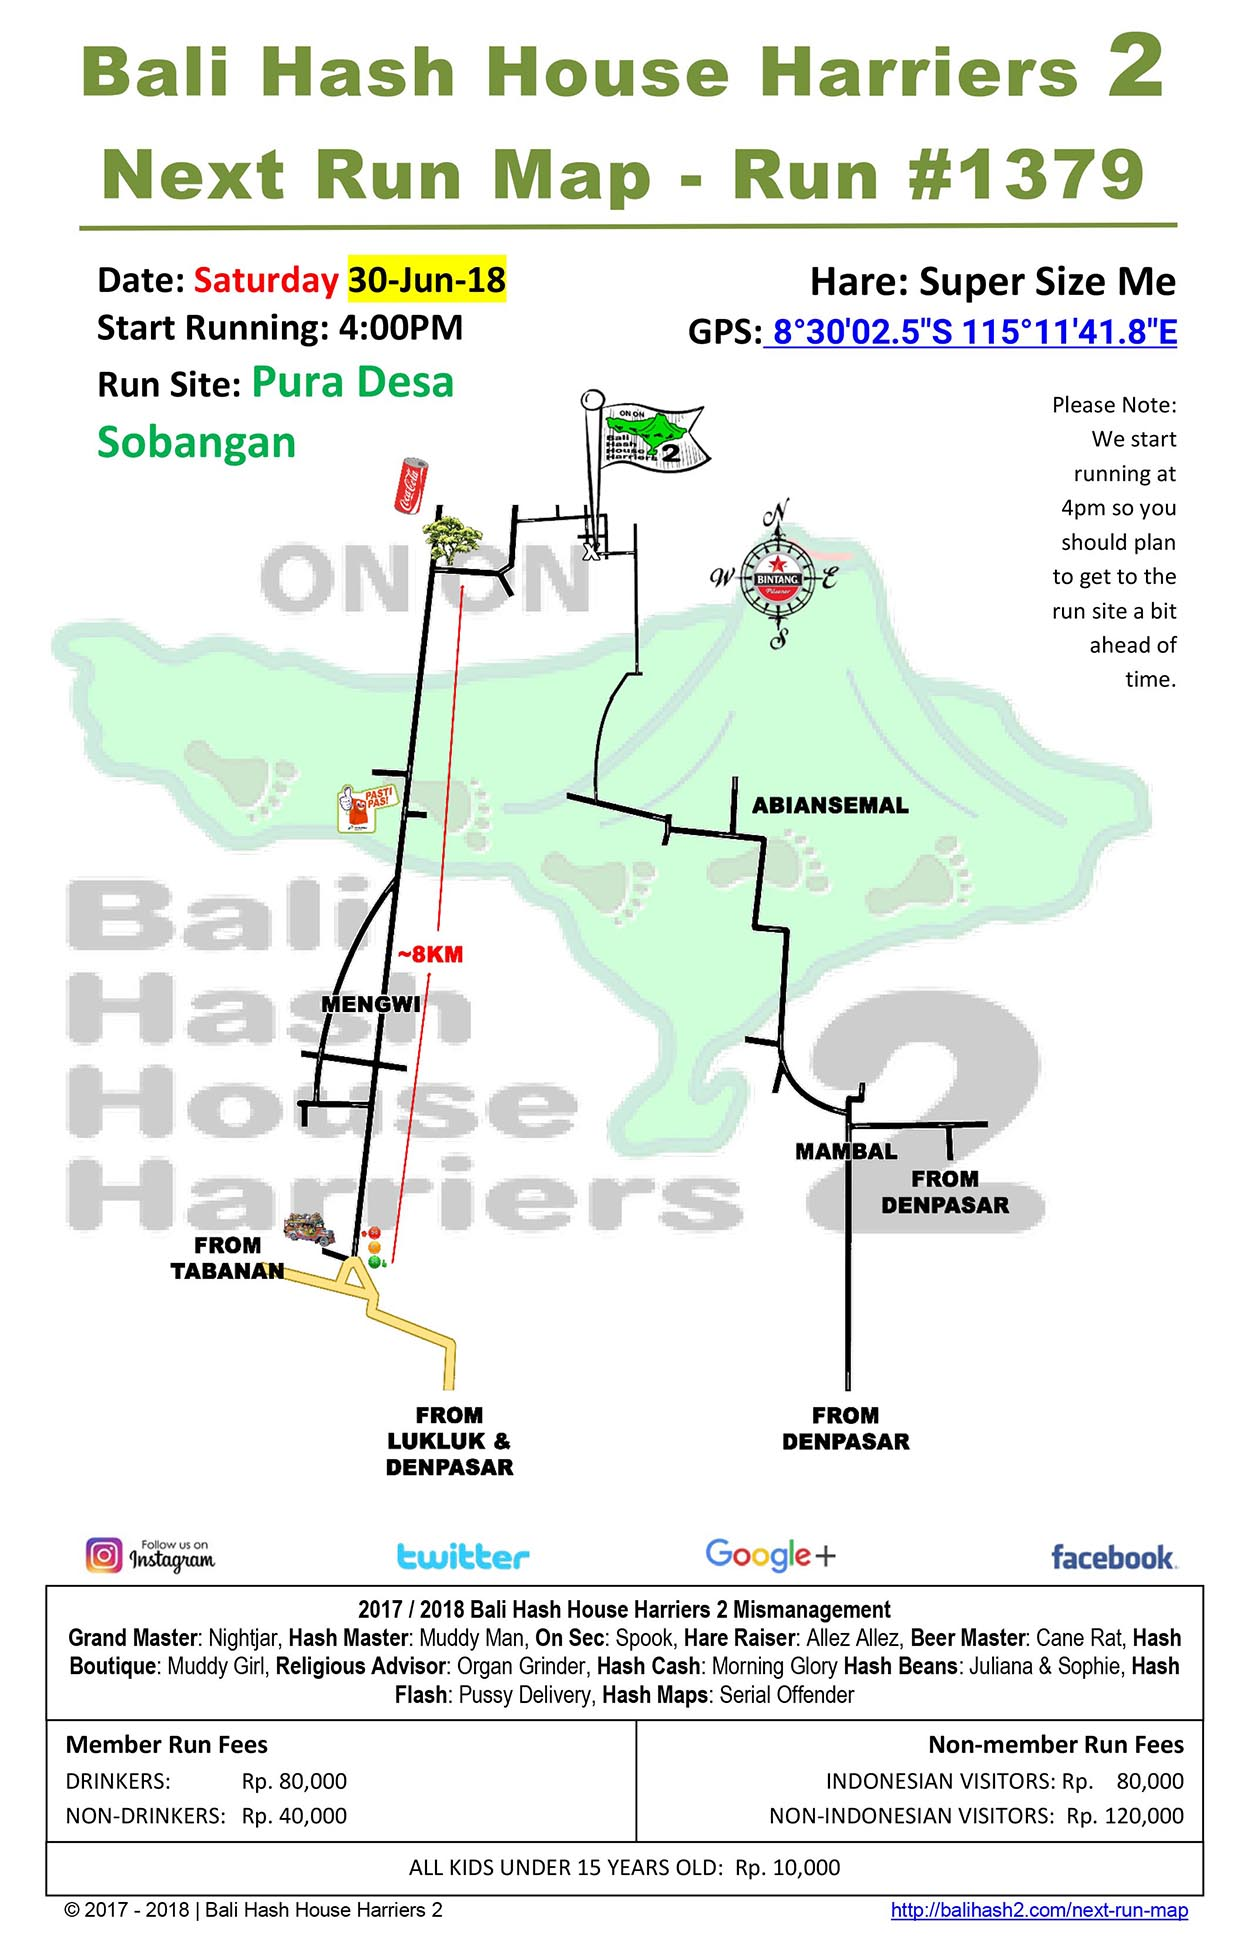 BHHH2 Next Run Map #1379 Pura Desa Sobangan 30-Jun-18